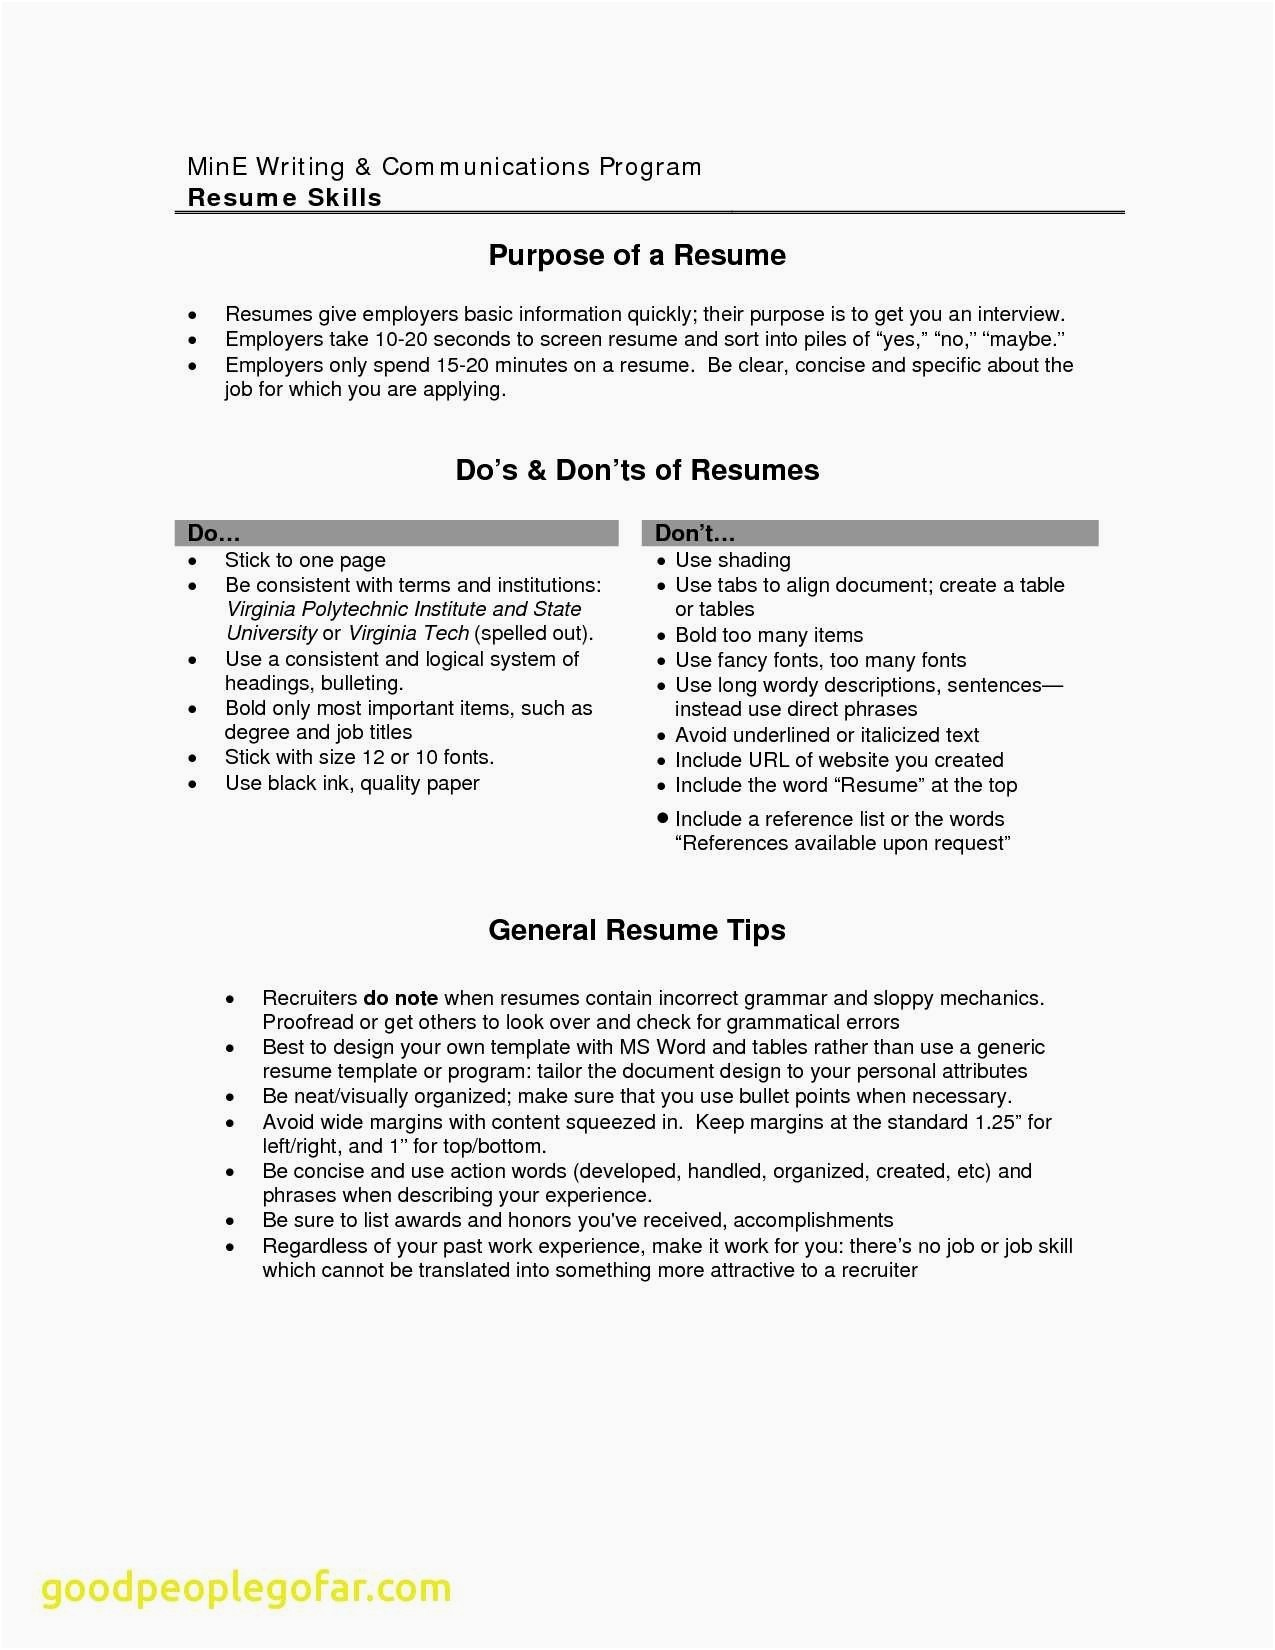 Good Skills to Put On A Resume - Good Things to Put A Resume Elegant Elegant Entry Level Resume